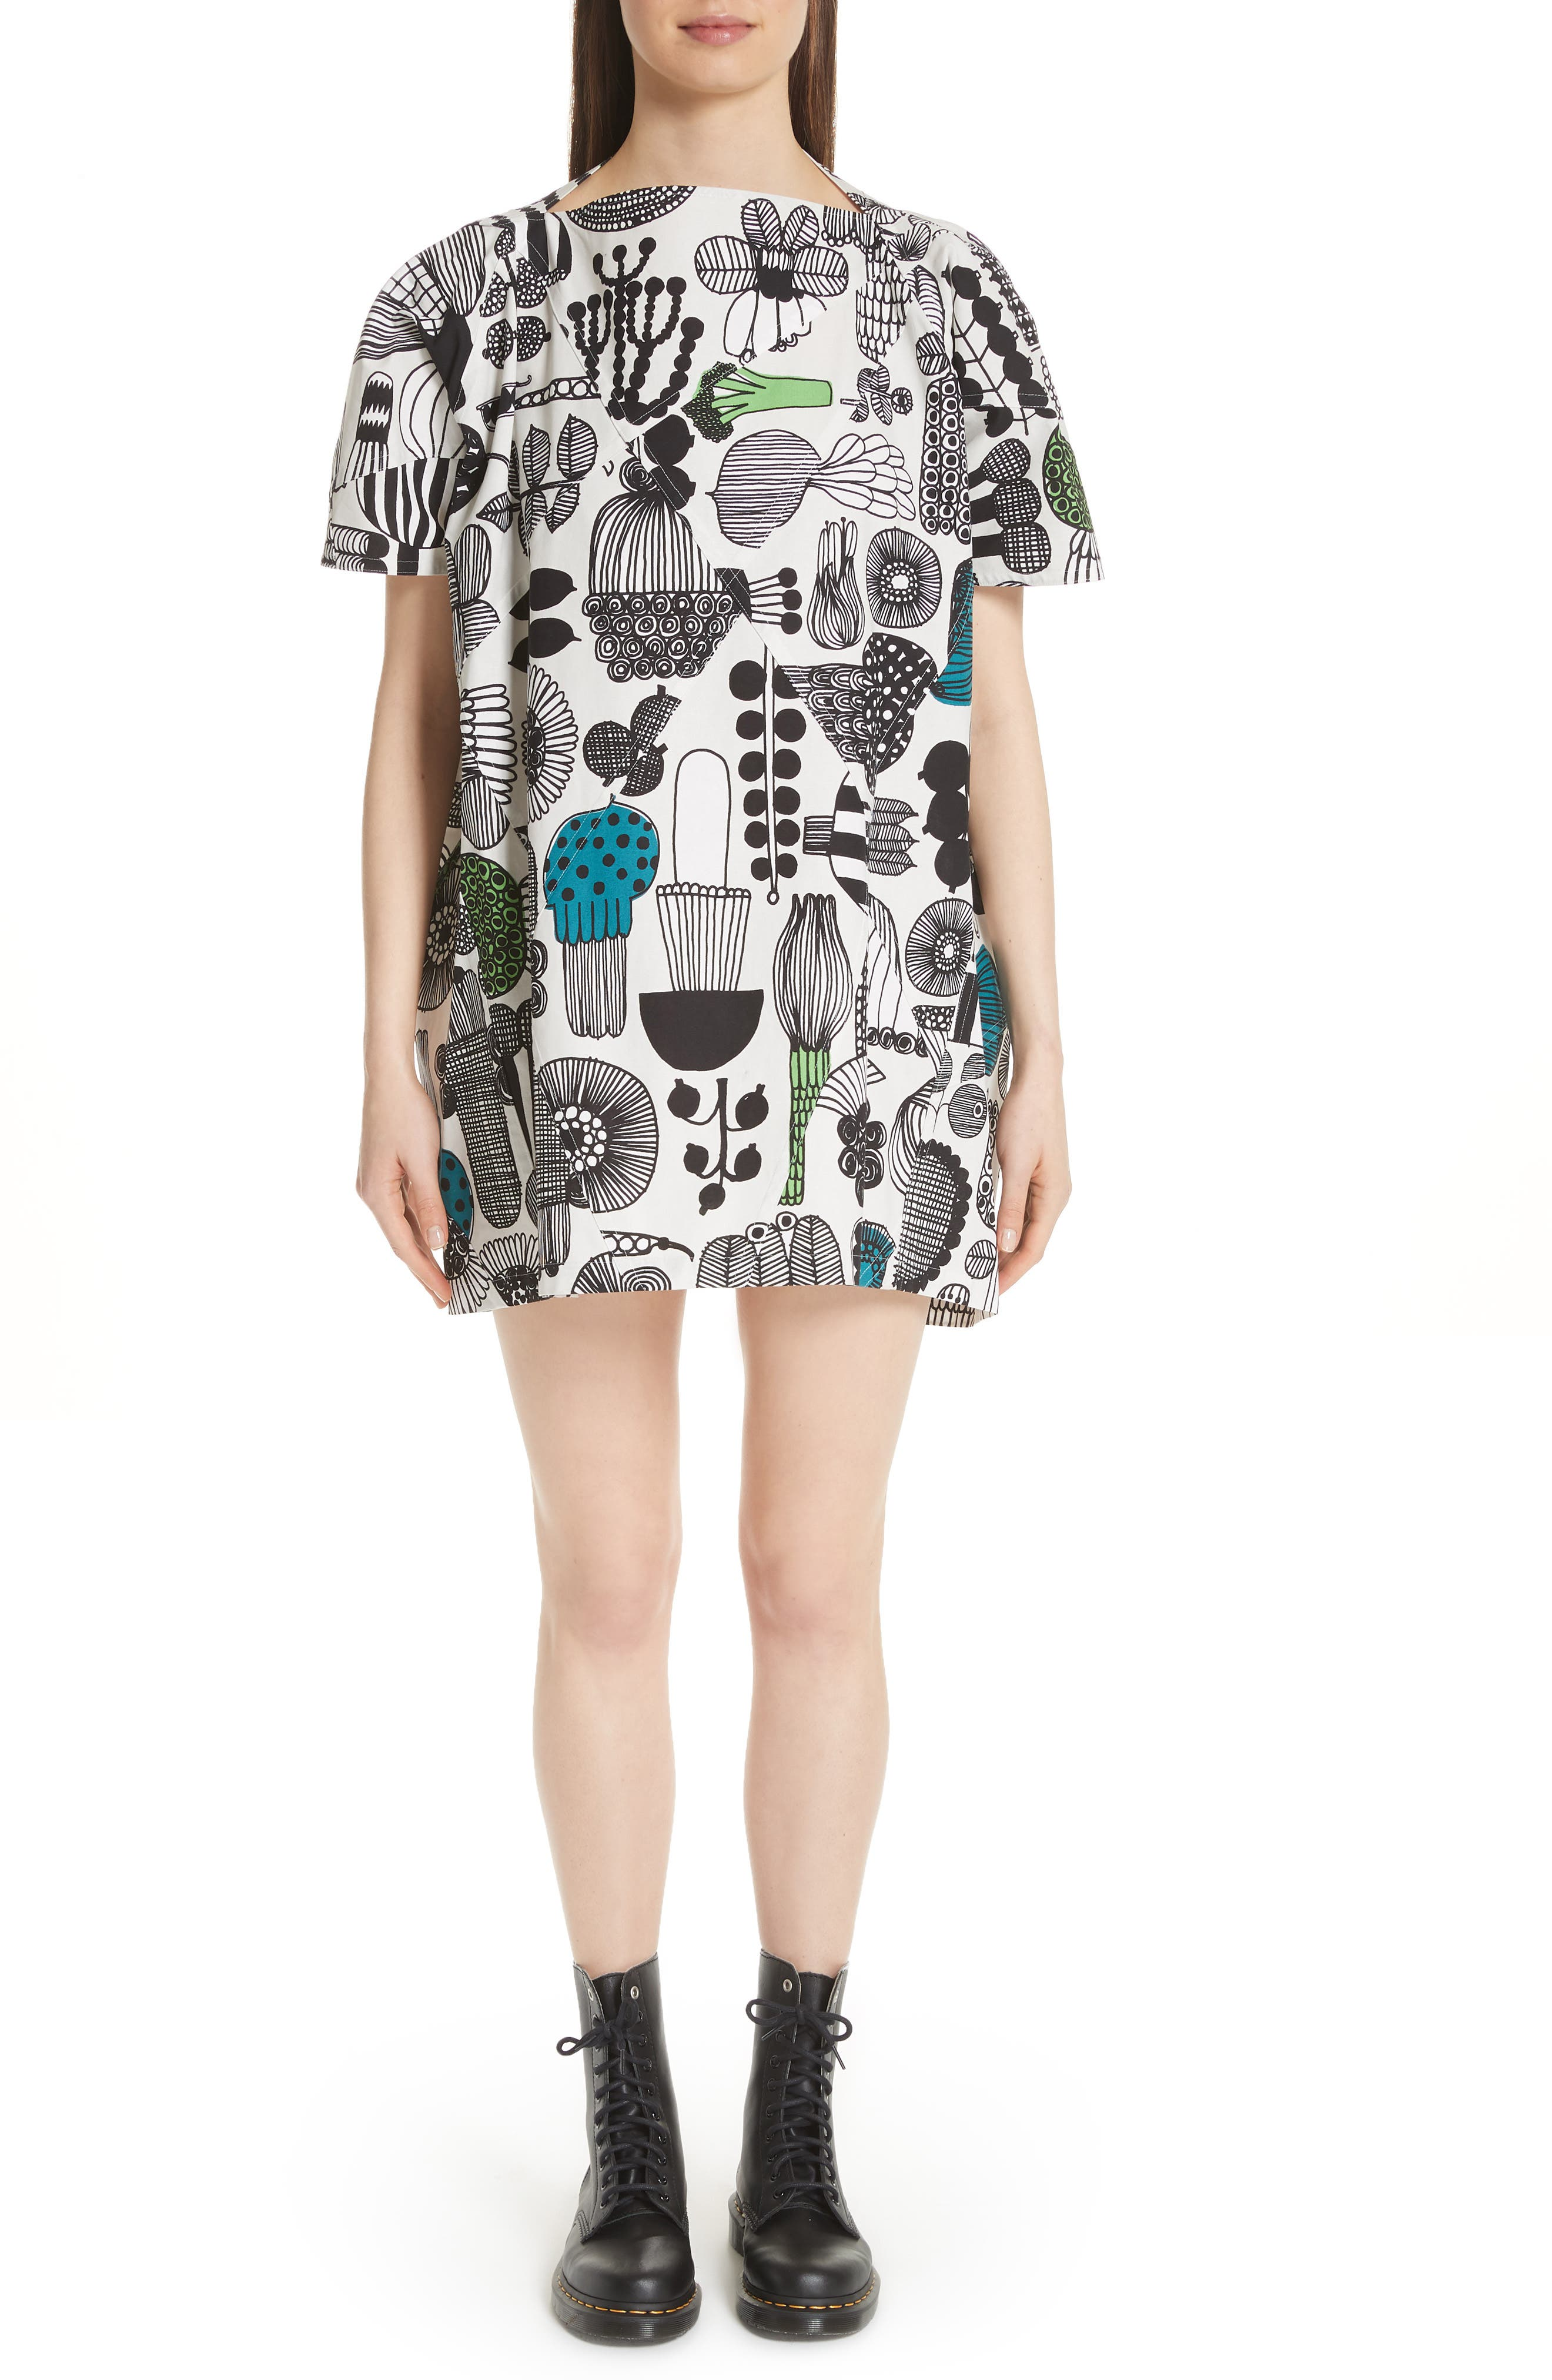 Vegetable Print Dress,                             Main thumbnail 1, color,                             Gry/ Grn/ Blk